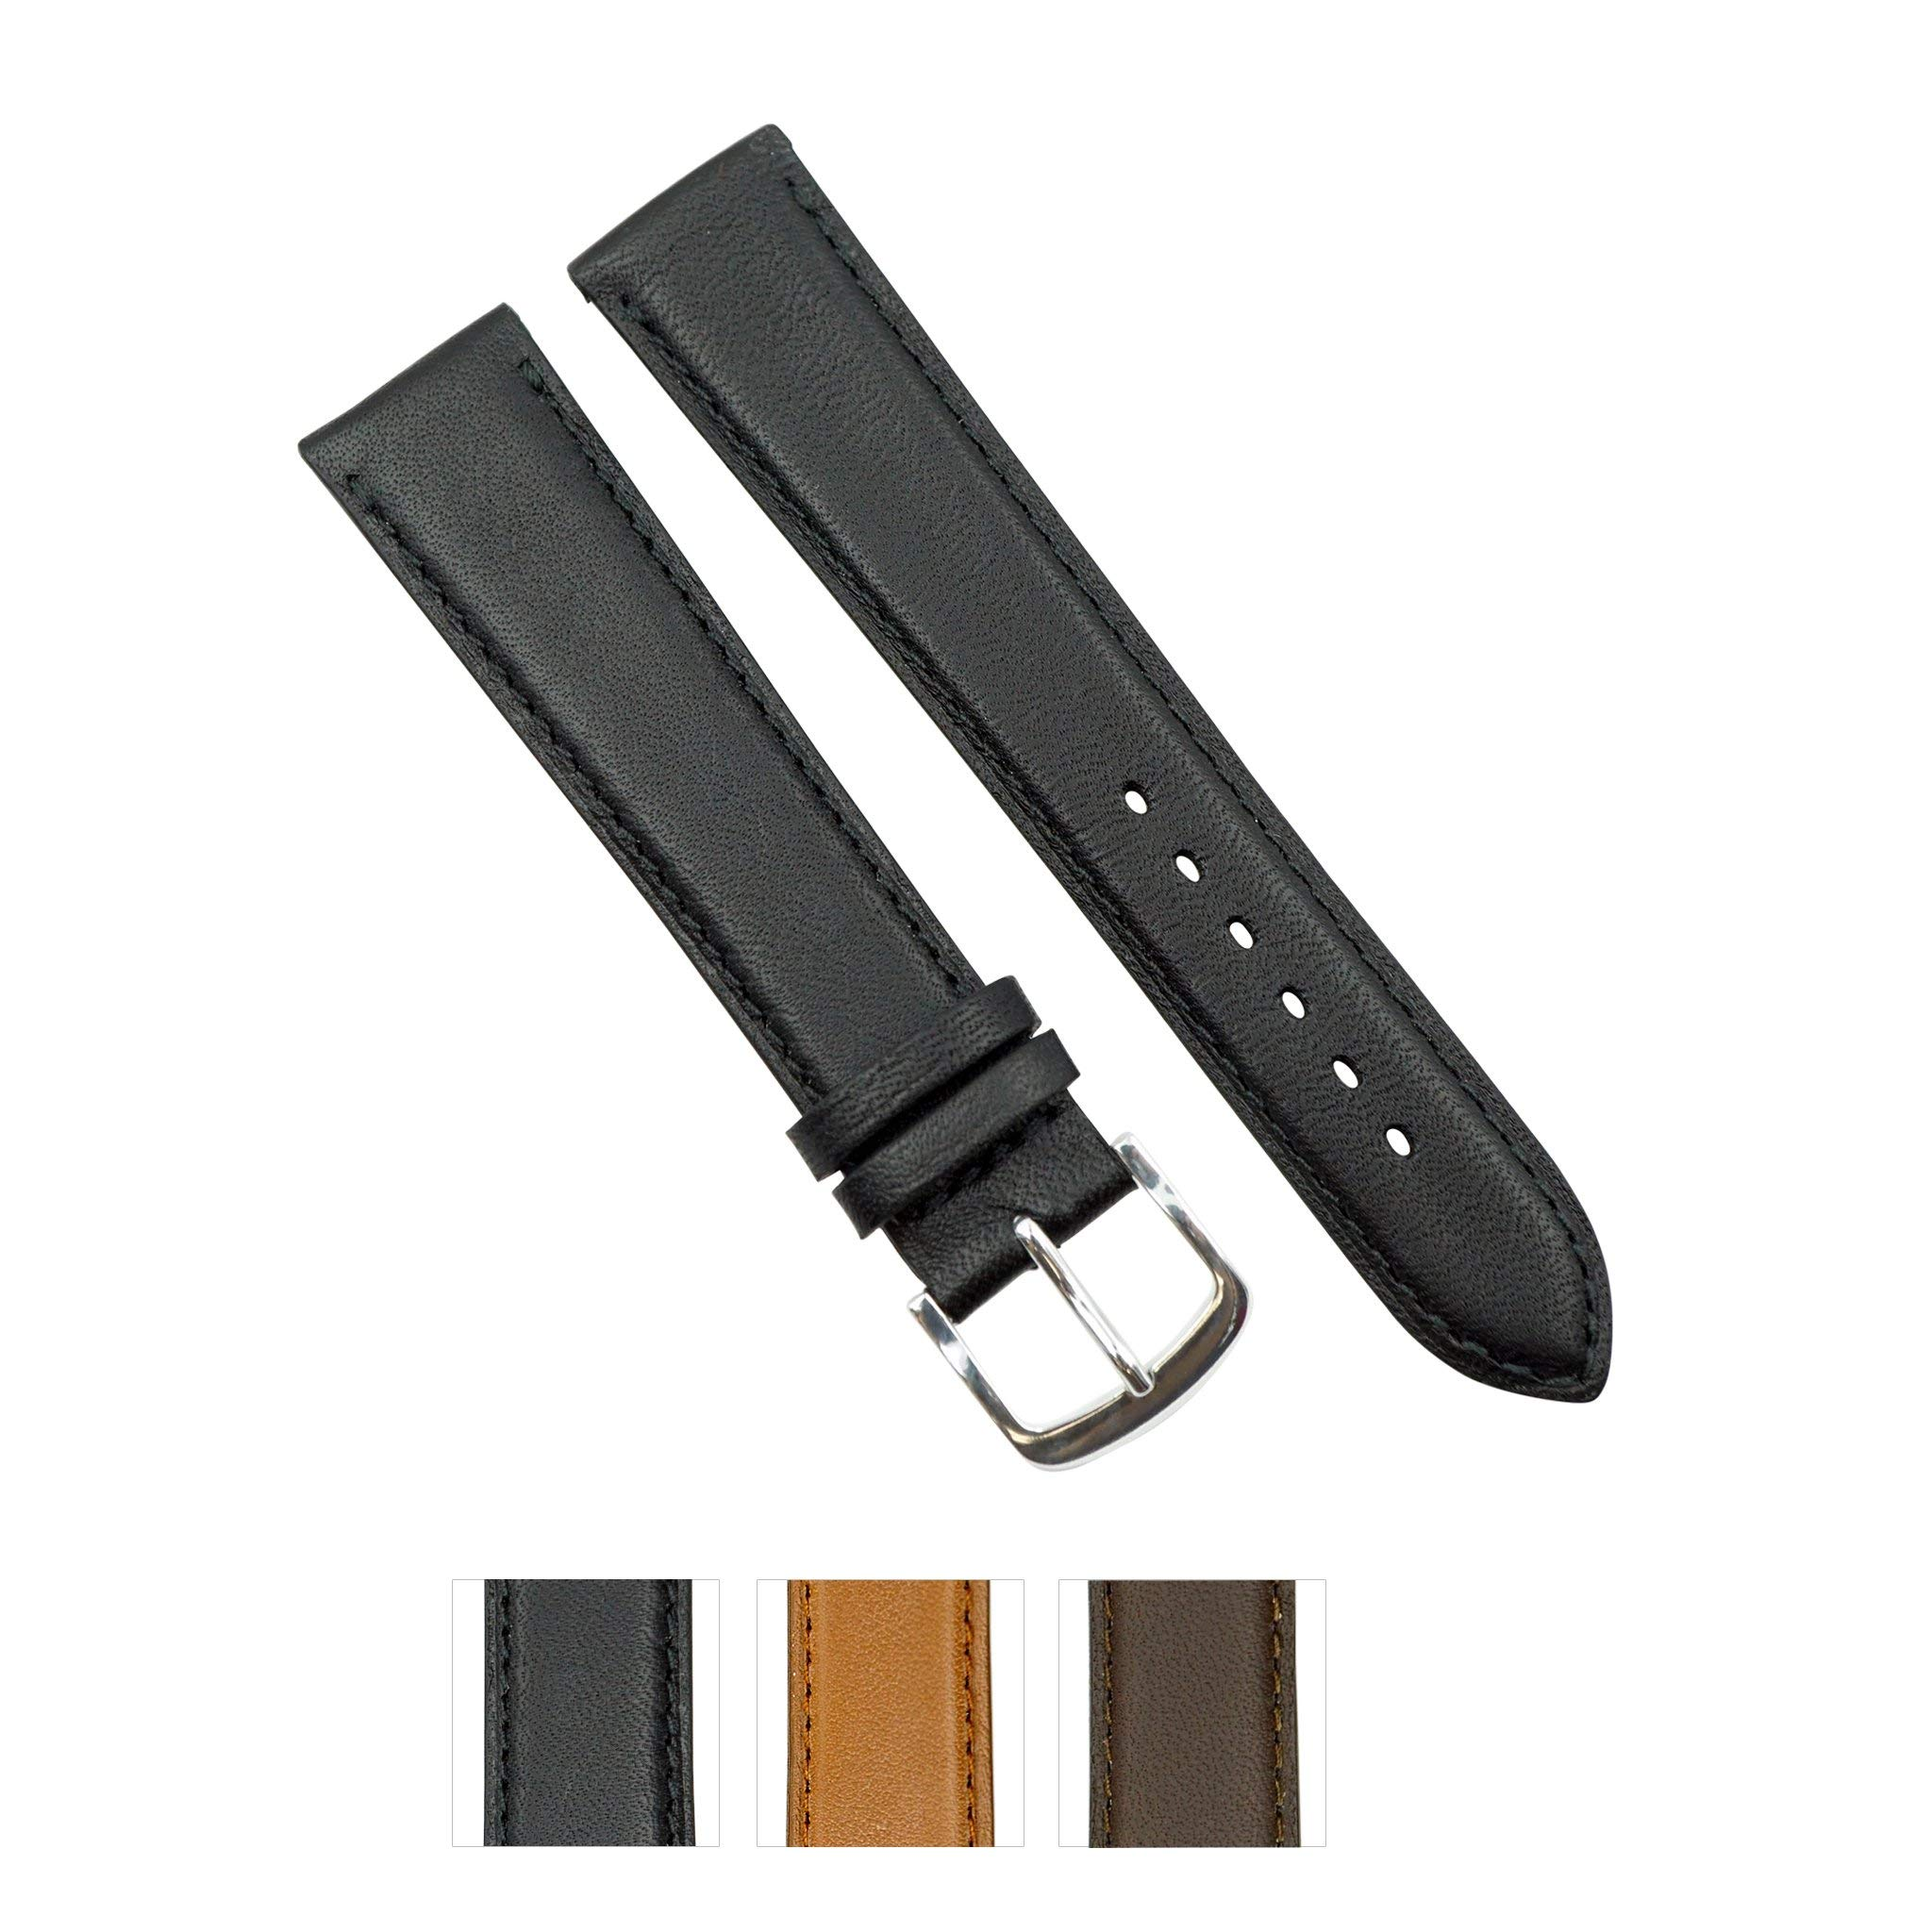 Genuine Smooth Soft Leather Handmade in France -Black, Brown and Tan in Sizes (9mm - 26mm)